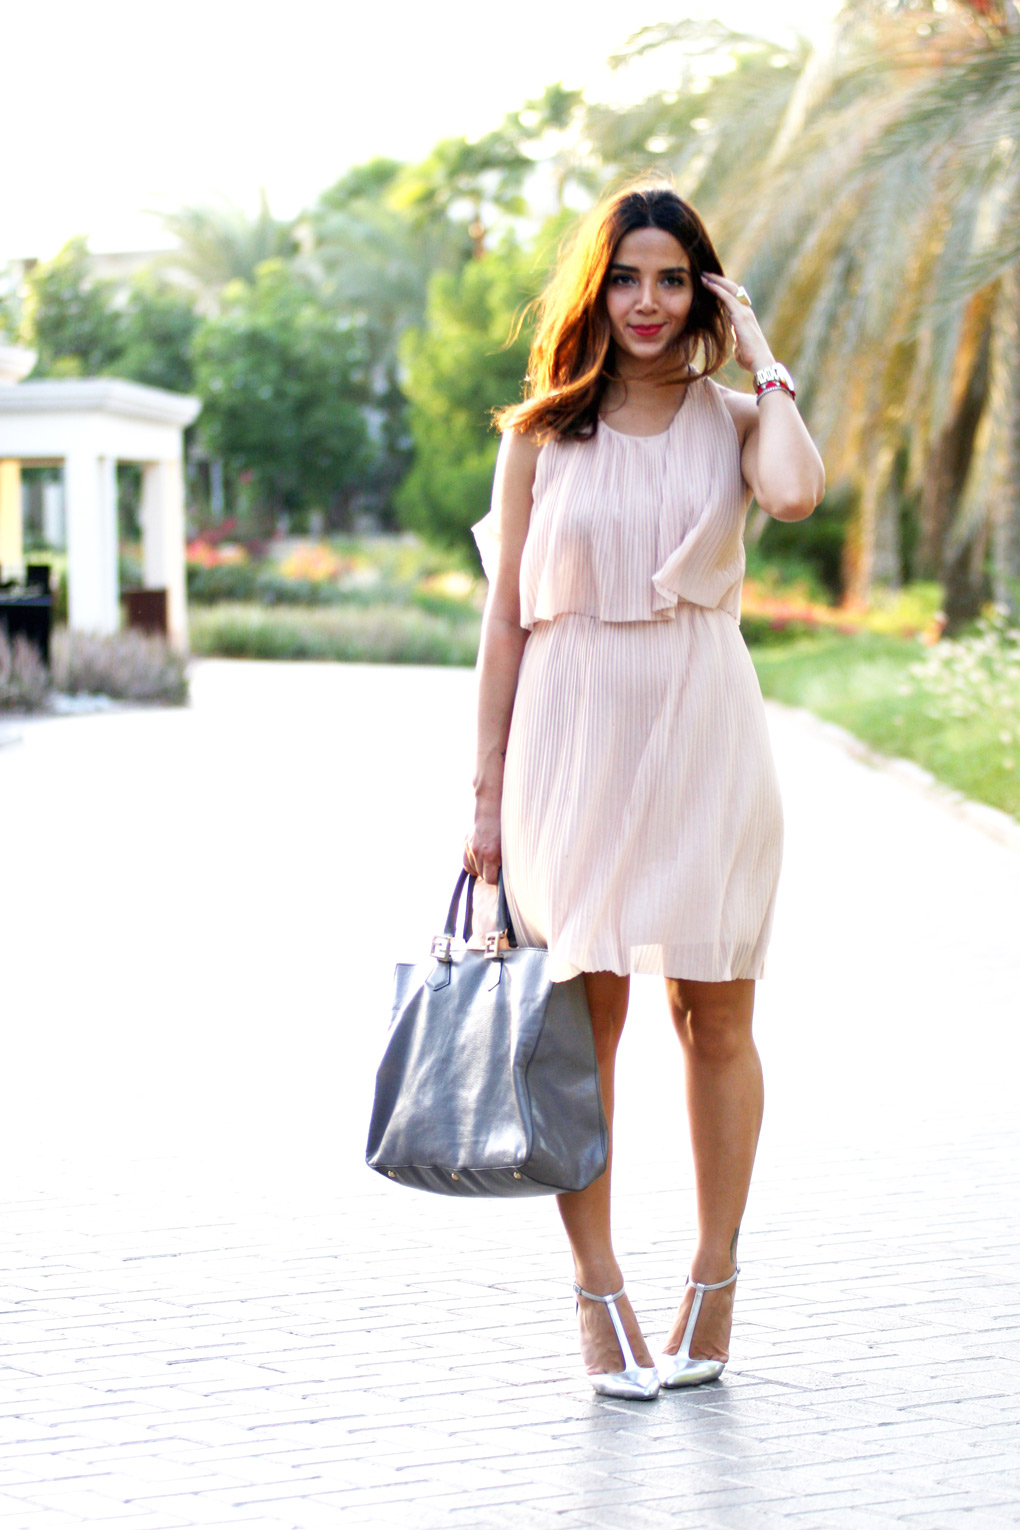 Lyla_Loves_Fashion_fendi_Asos_Hm_dress__5646